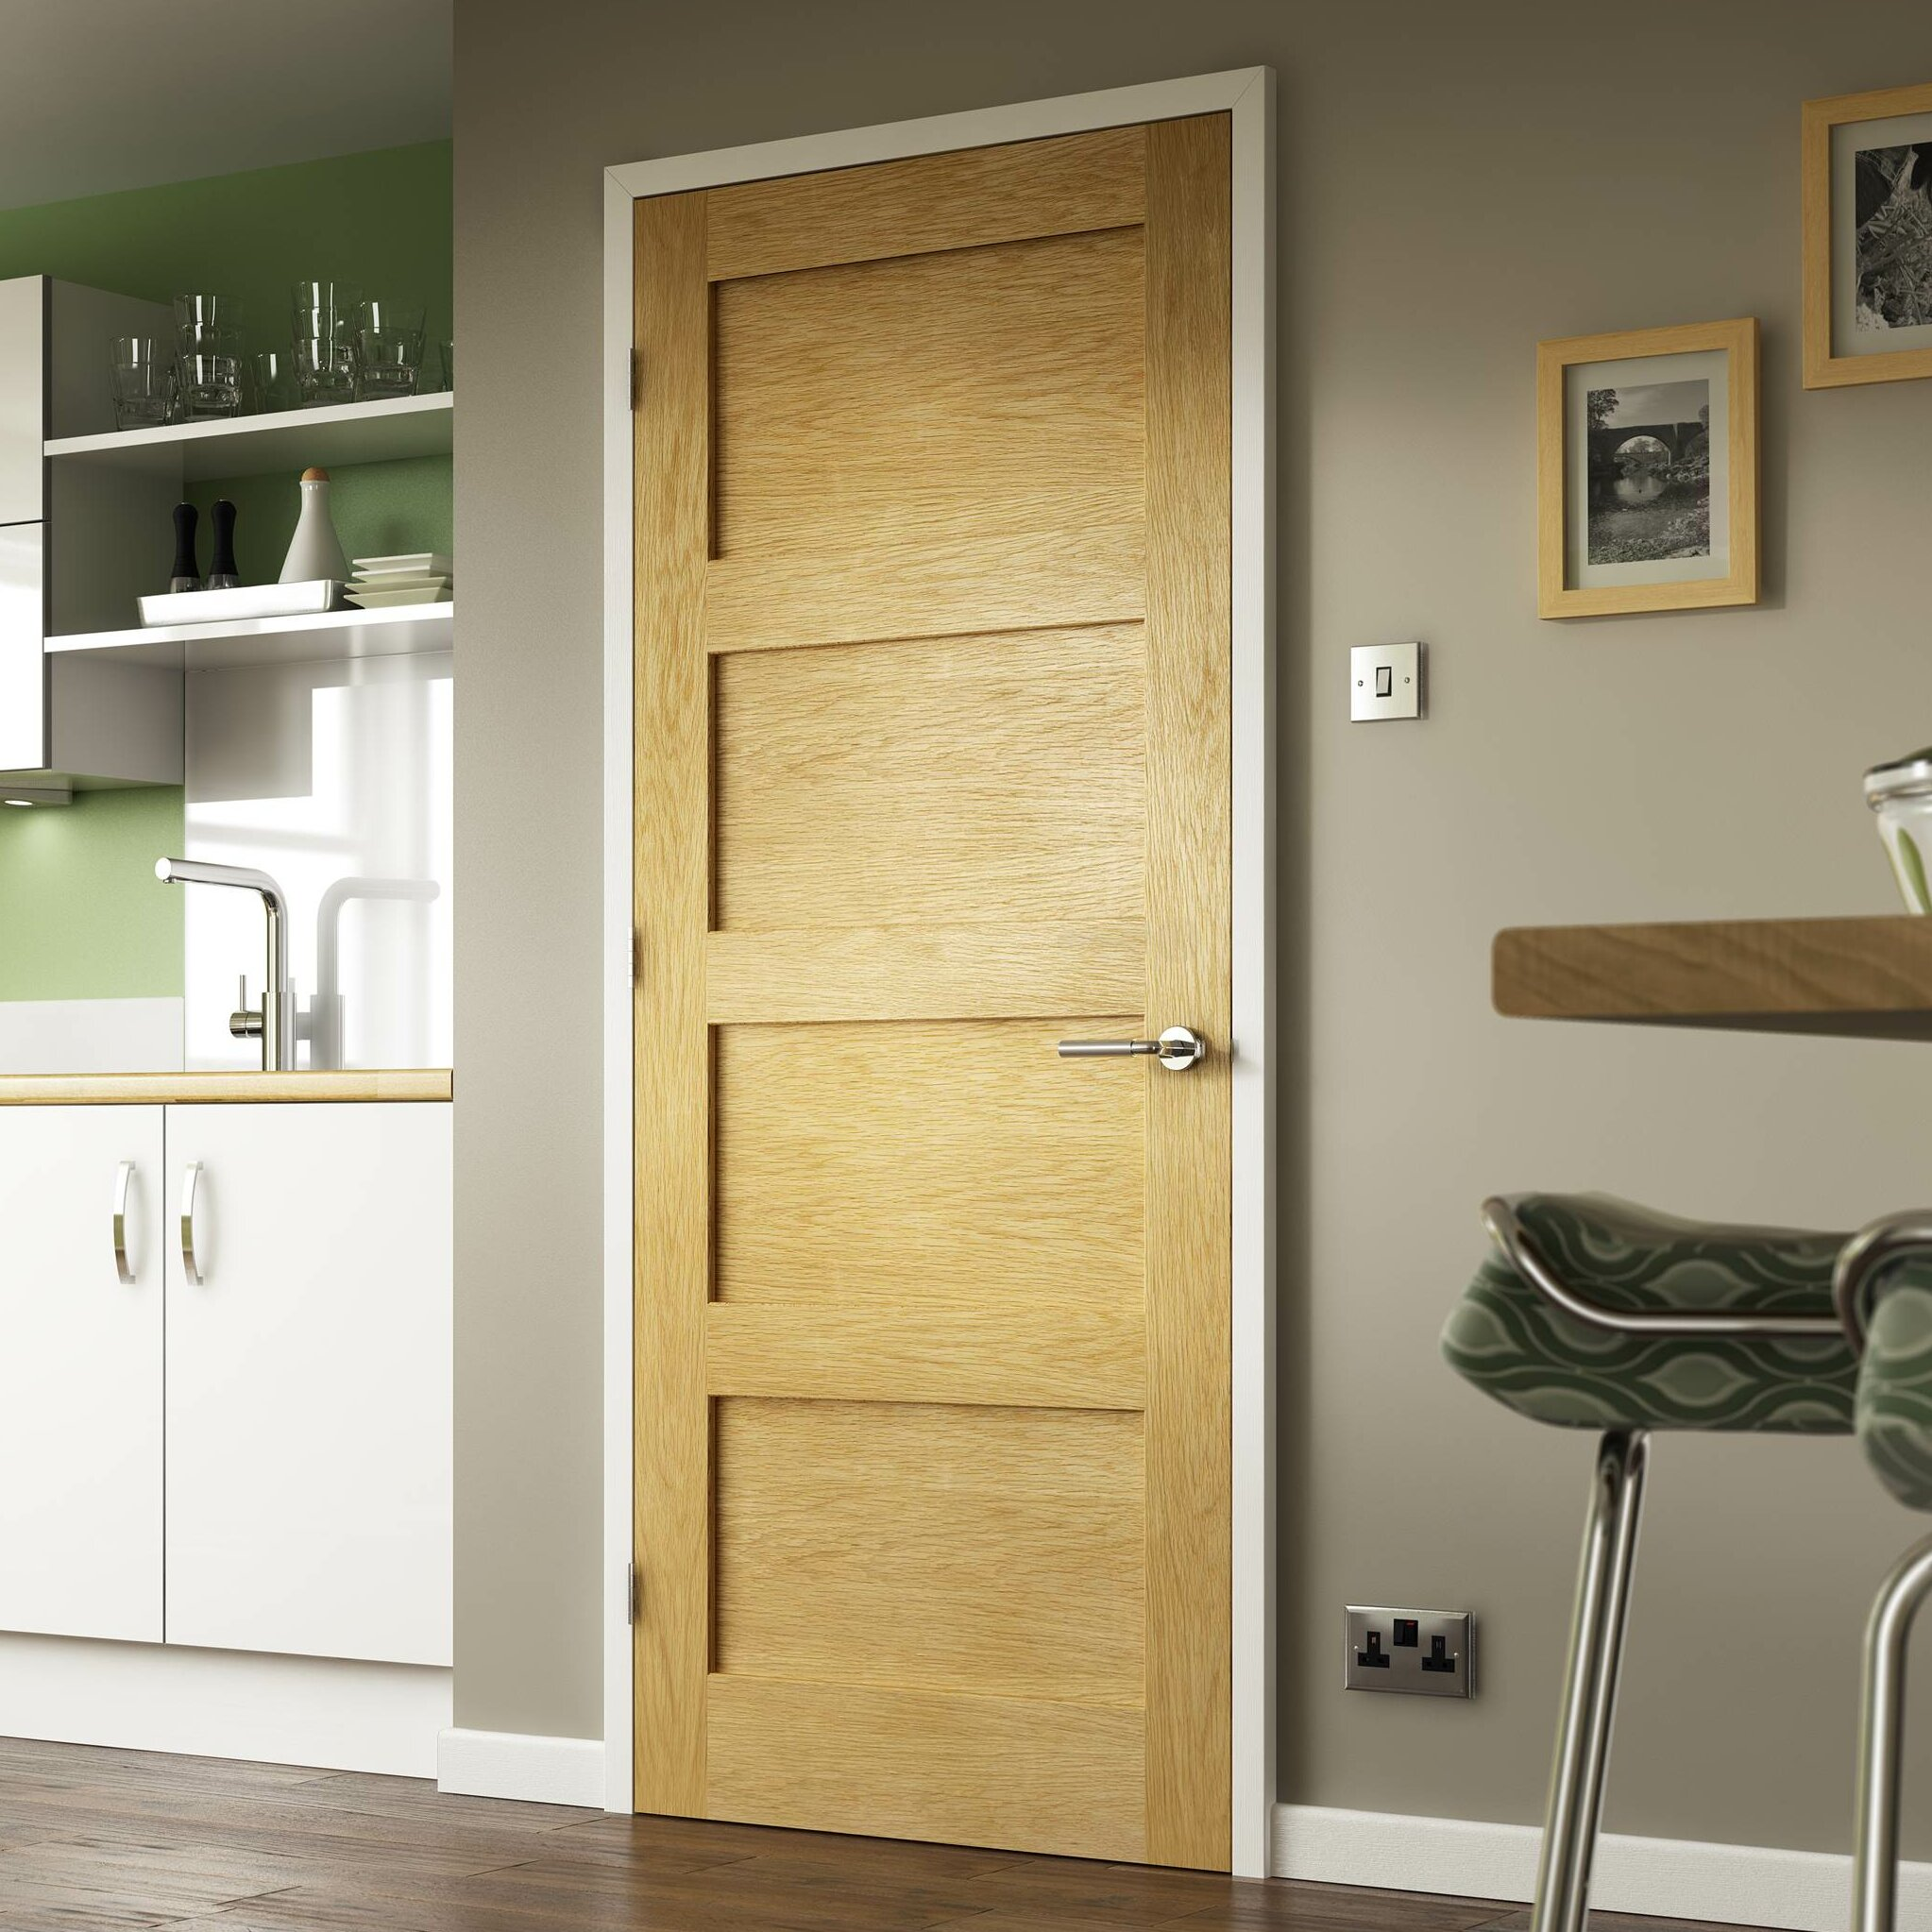 Prem Doors & Images of Jewson Internal Wooden Doors - Woonv.com - Handle idea